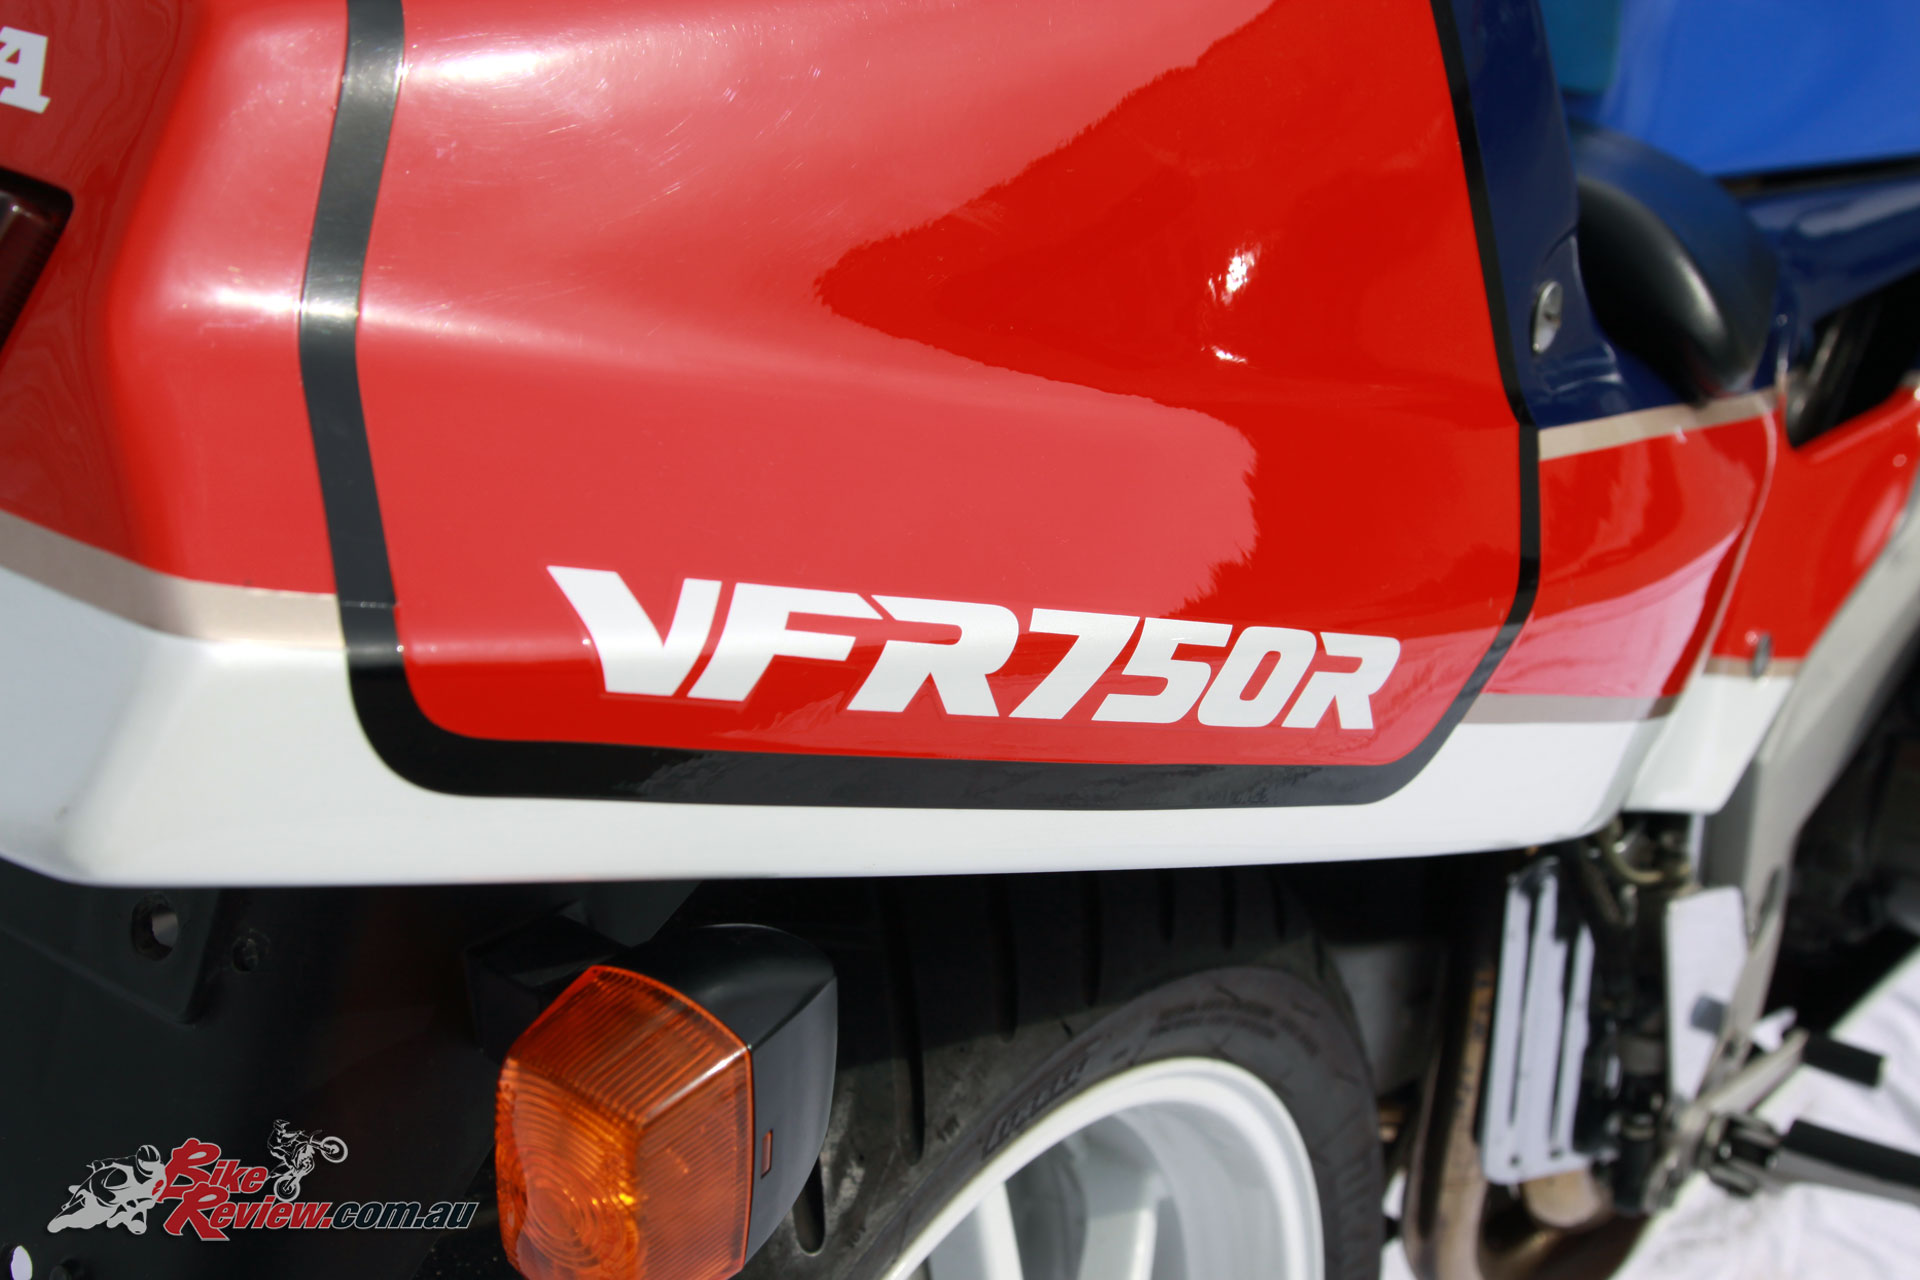 The VFR750R was arguably created during the pinnacle of investment into motorcycle racing with plenty of overflow into road machines